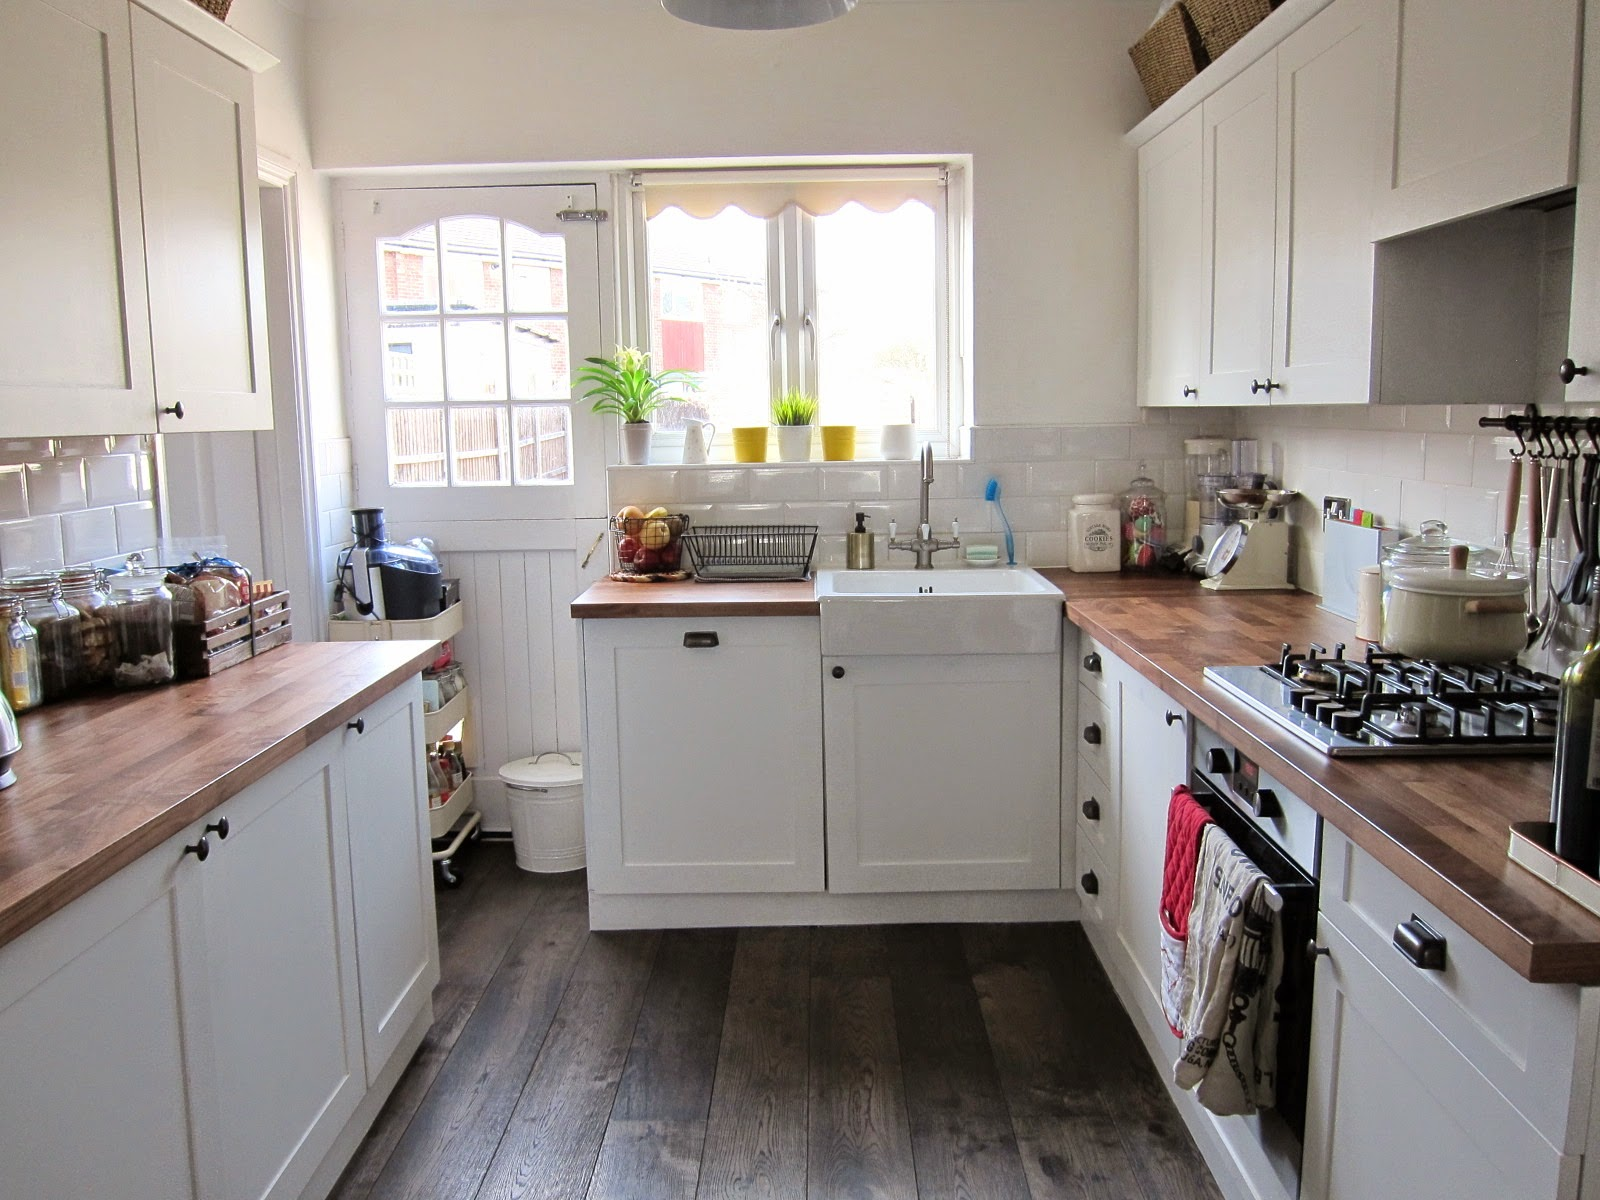 We Kept The Existing Layout Of Kitchen Cupboards Minus Doors Subway Wall Tiles And Garden Door Apart From That Everything Was